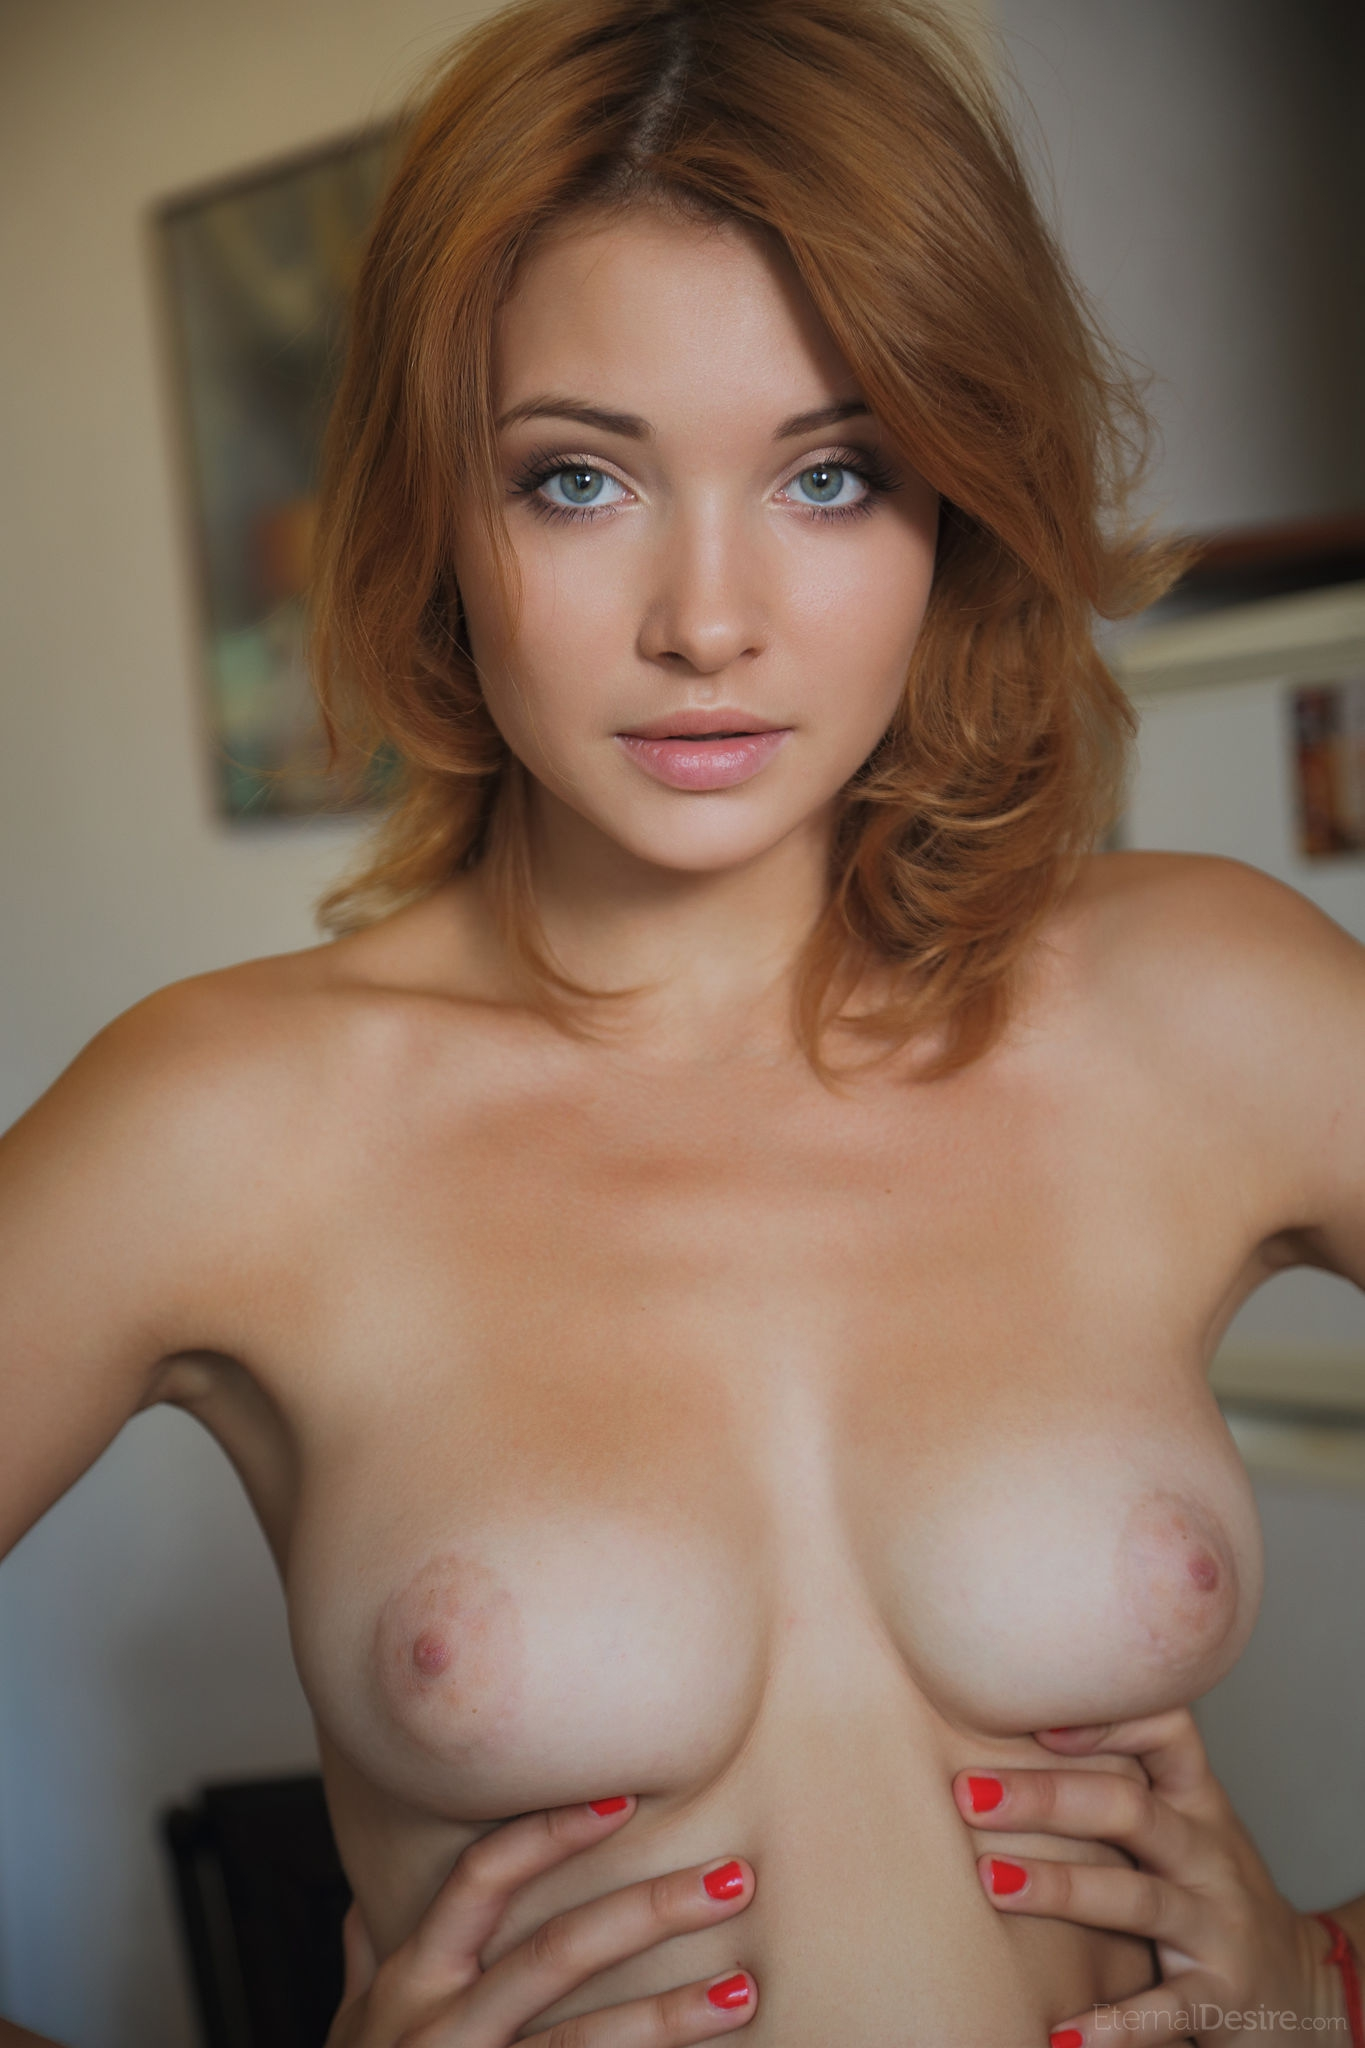 hottest woman of porn